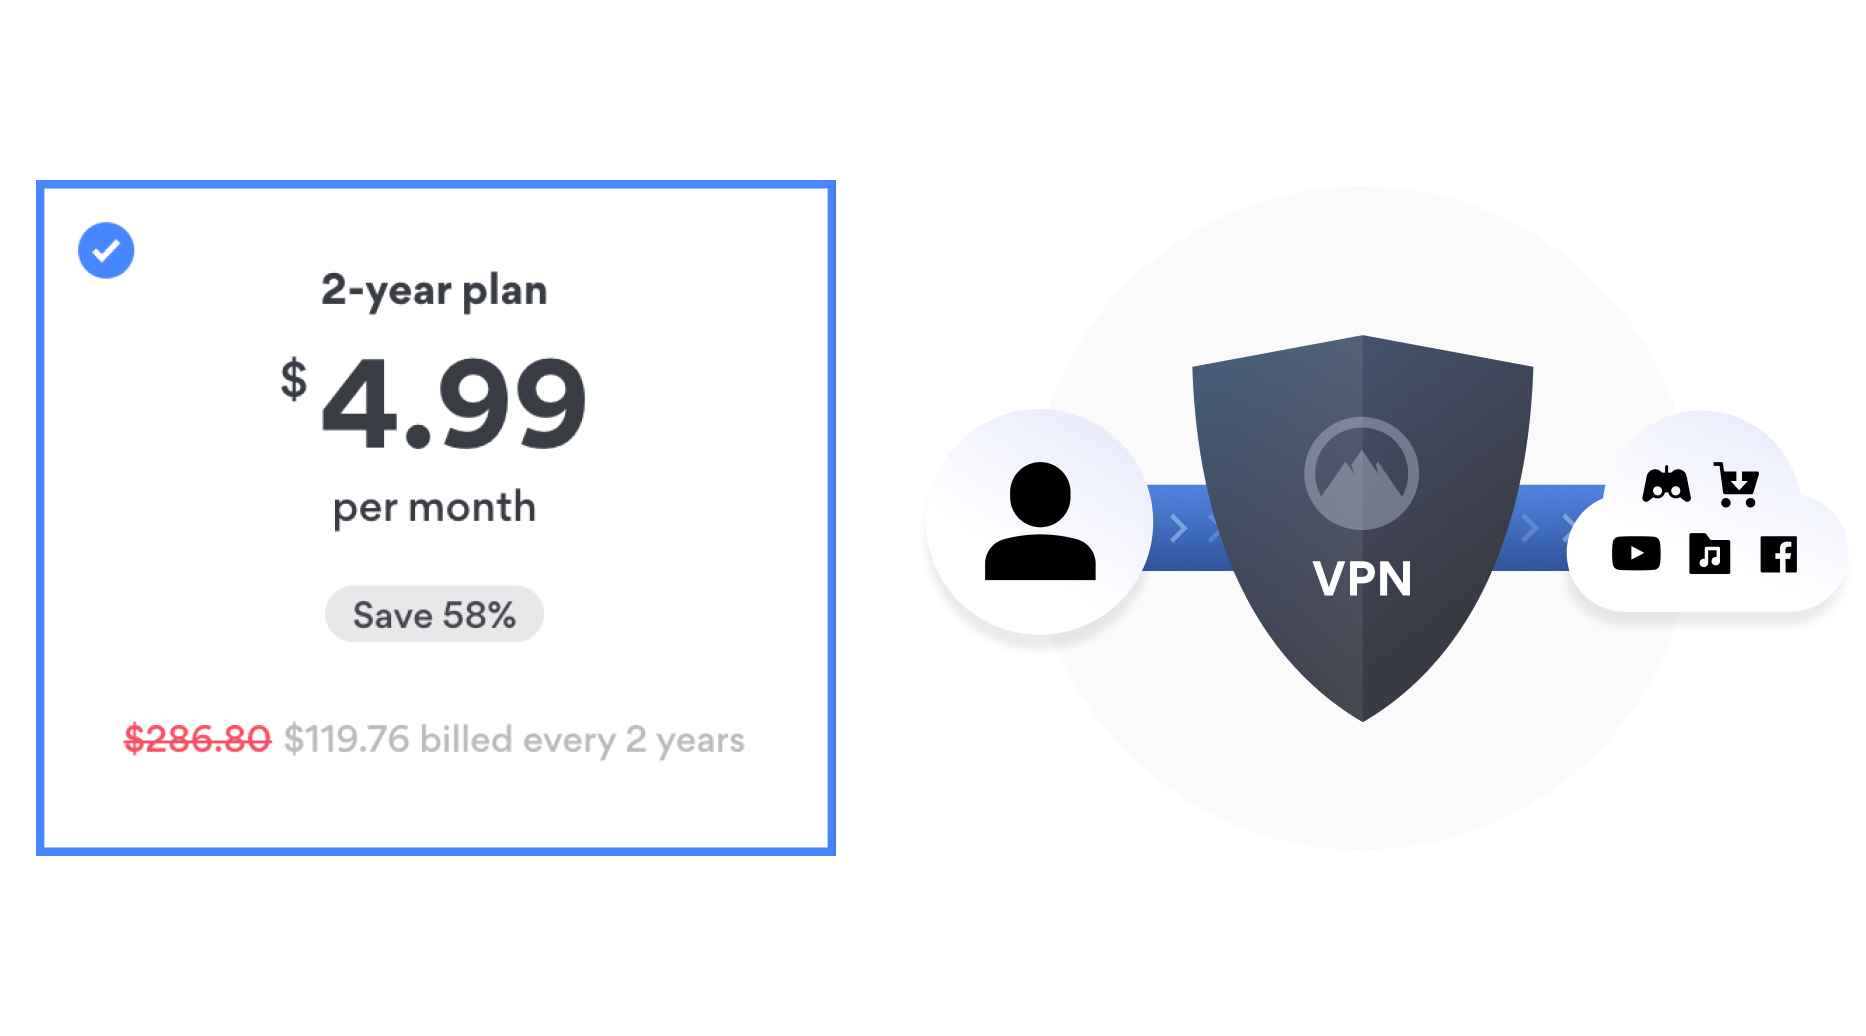 nordvpn-2year-plan